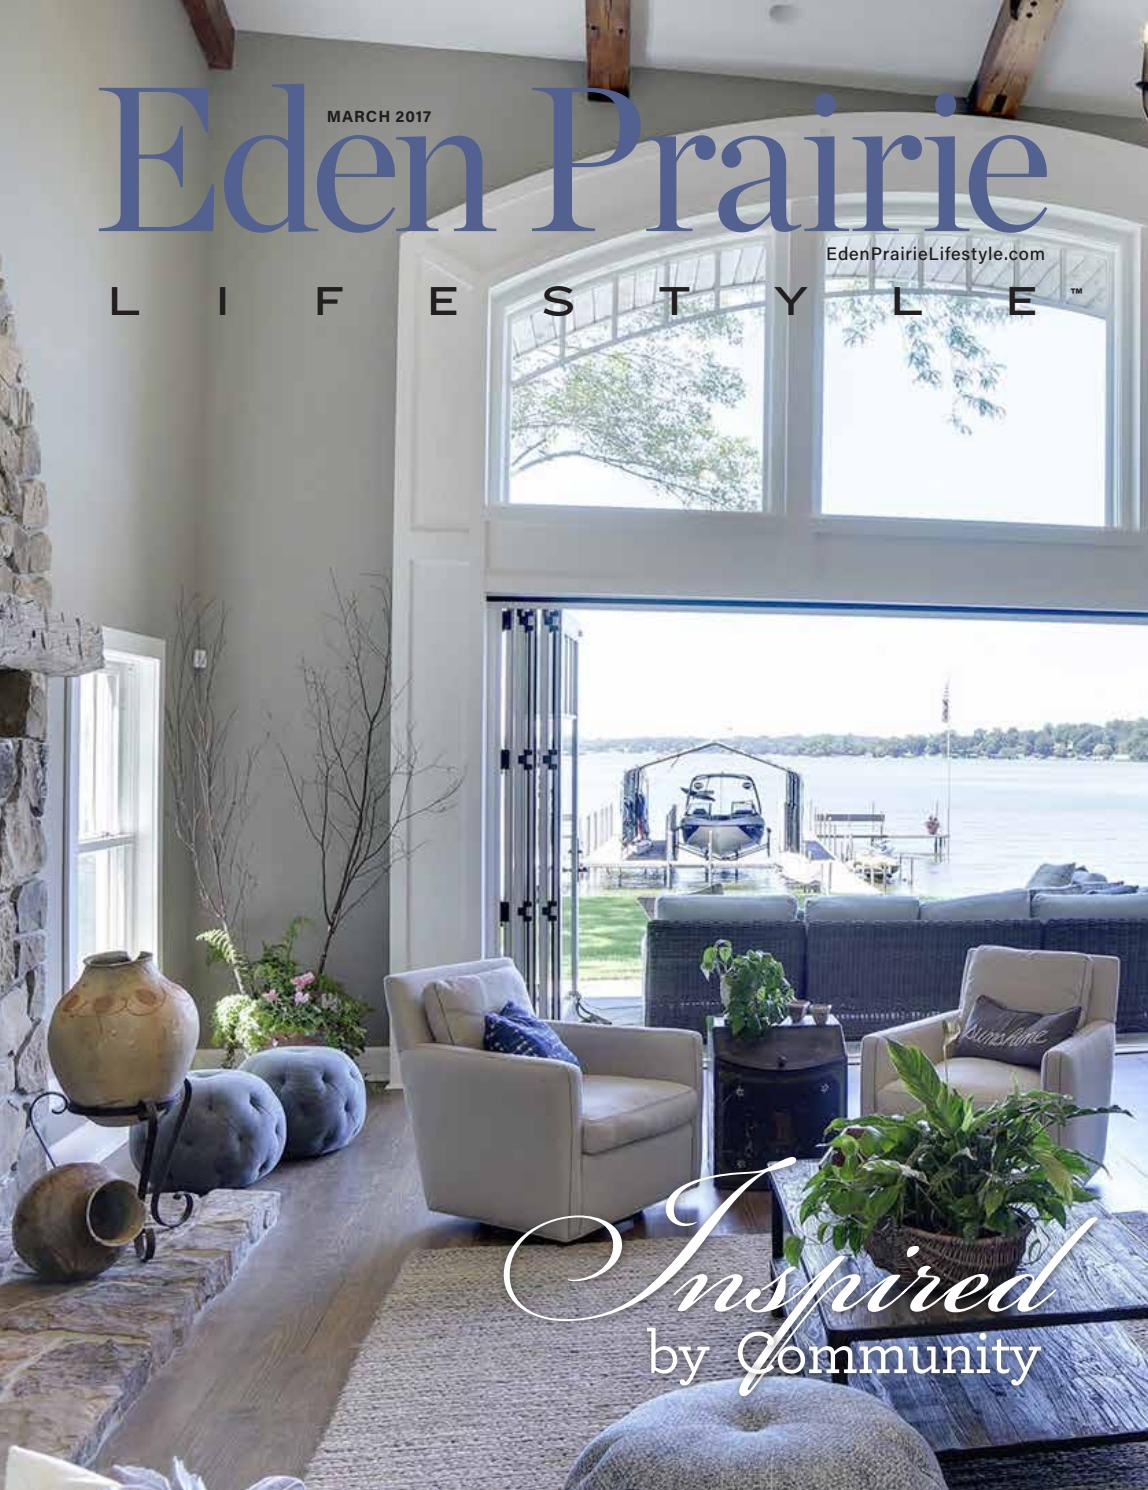 Sensational Eden Prairie March 2017 By Lifestyle Publications Issuu Forskolin Free Trial Chair Design Images Forskolin Free Trialorg